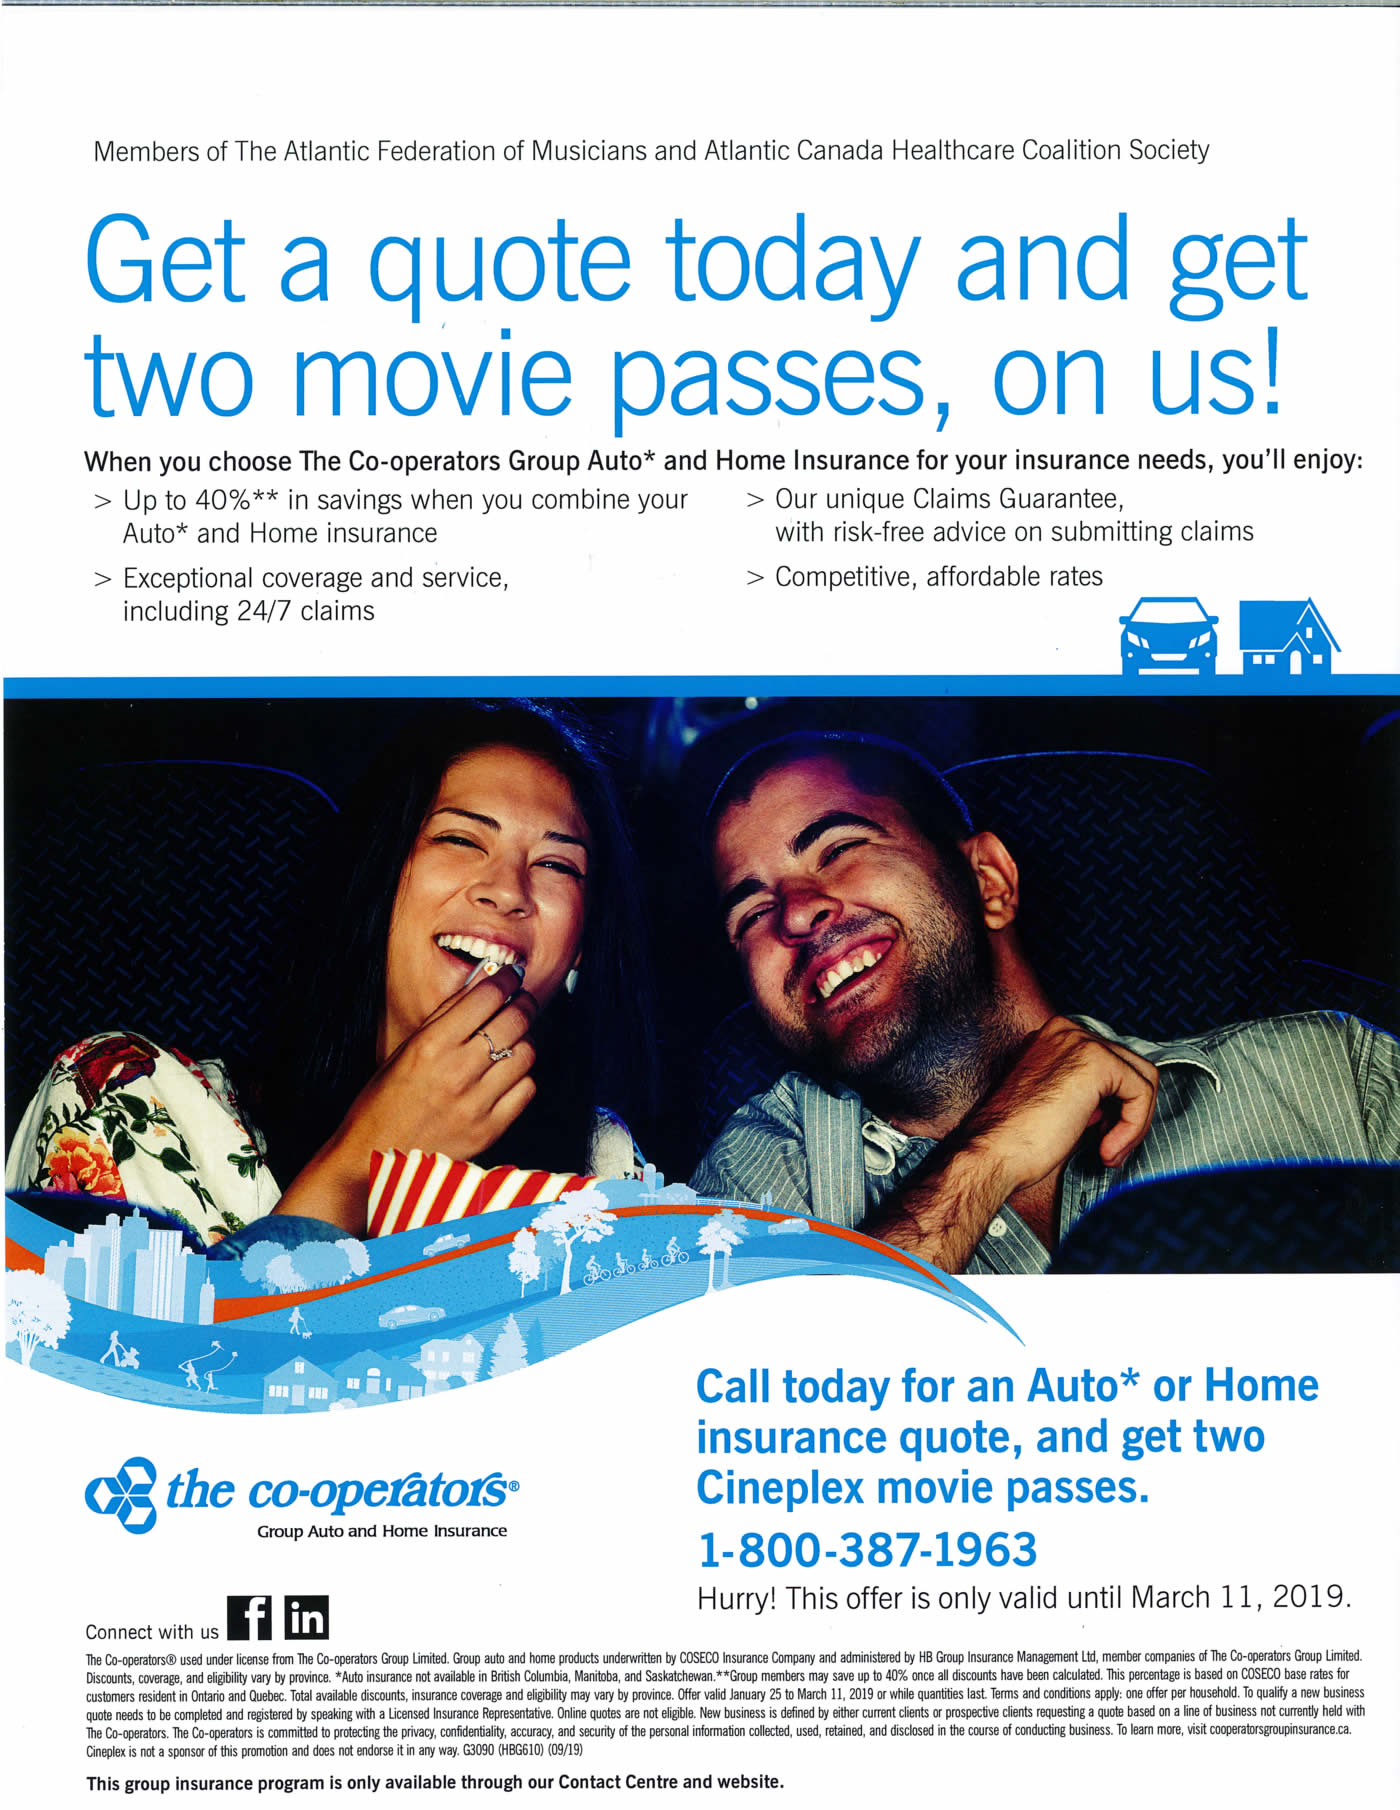 Get a quote and get two movie passes